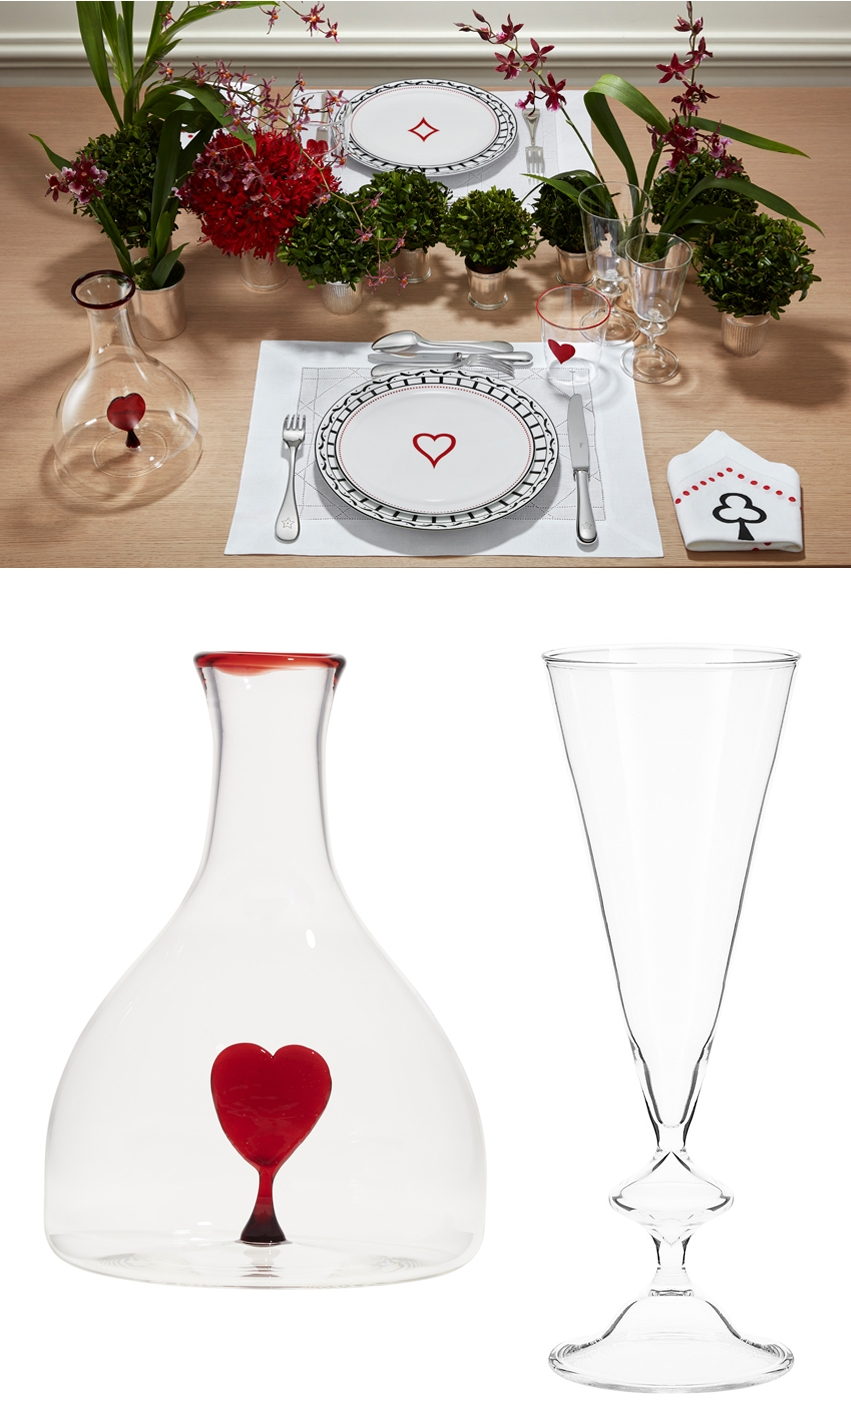 Dior Maison St. Valentine's Day capsule collection Check'n'Dior plate and decanter with heart